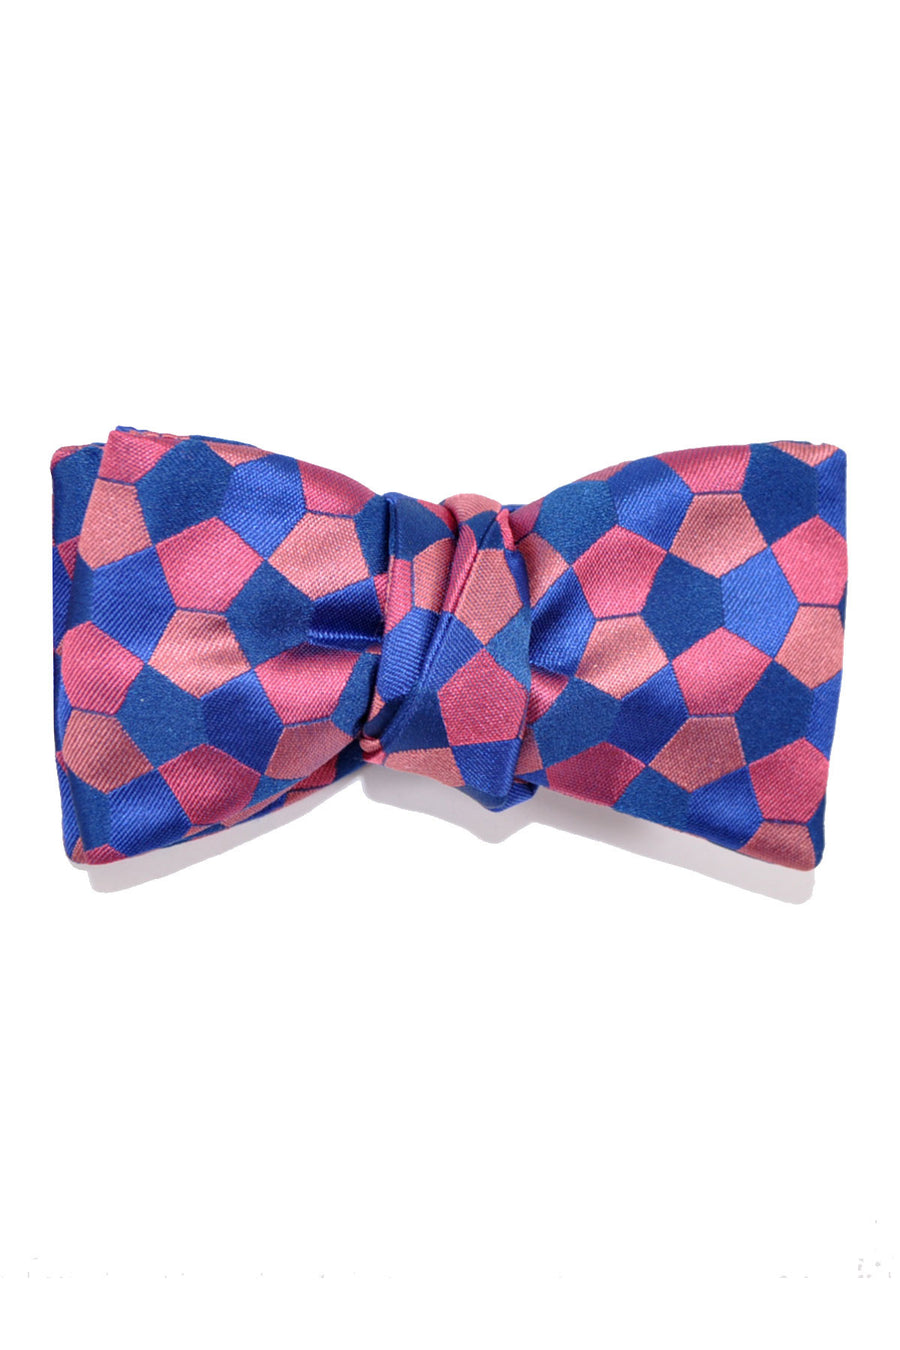 Le Noeud Papillon Bow Tie Pink Blue Geometric Self Tie